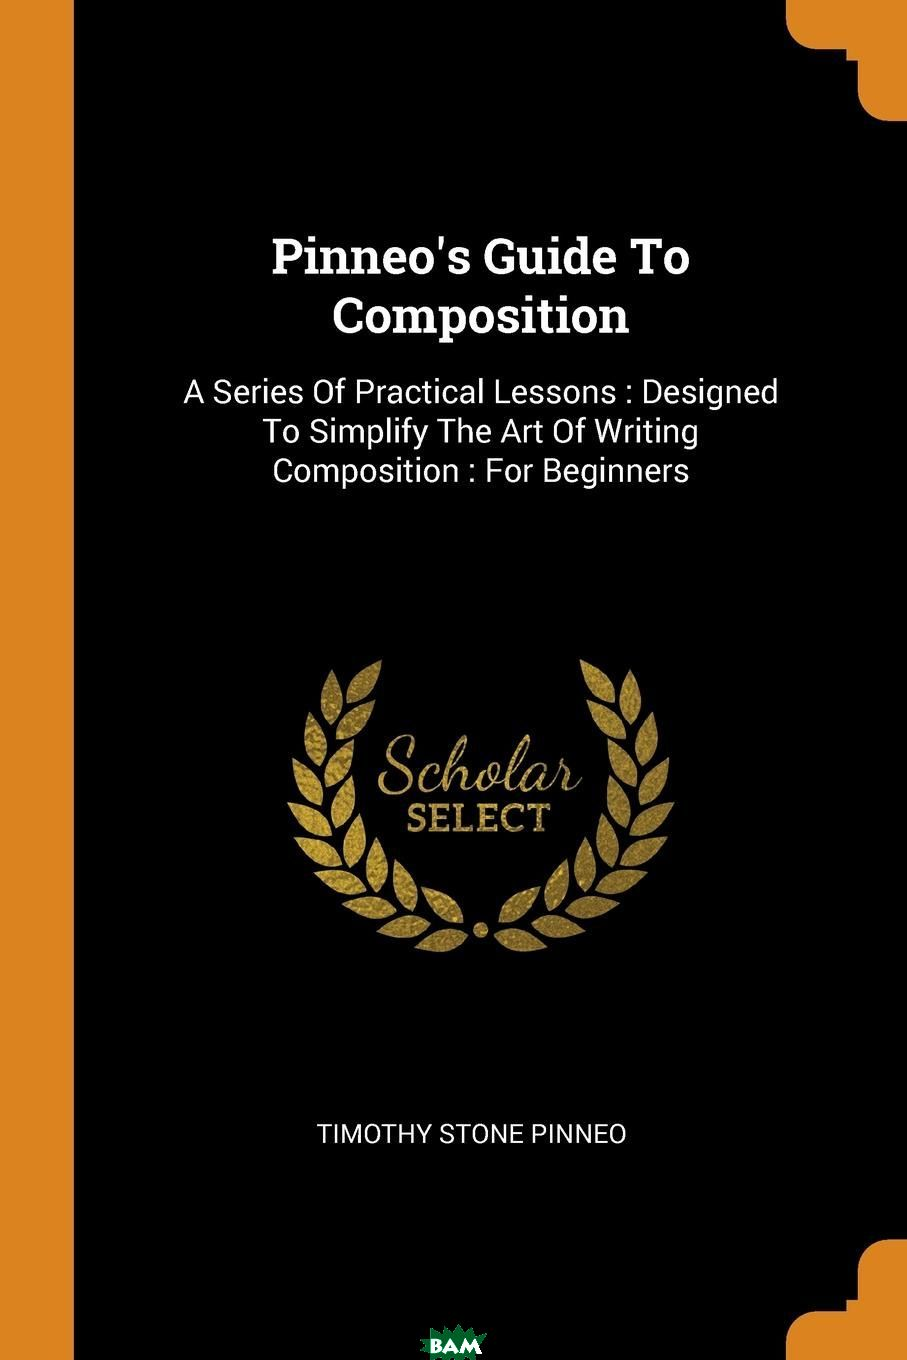 Купить Pinneo.s Guide To Composition. A Series Of Practical Lessons : Designed To Simplify The Art Of Writing Composition : For Beginners, Timothy Stone Pinneo, 9780353621541